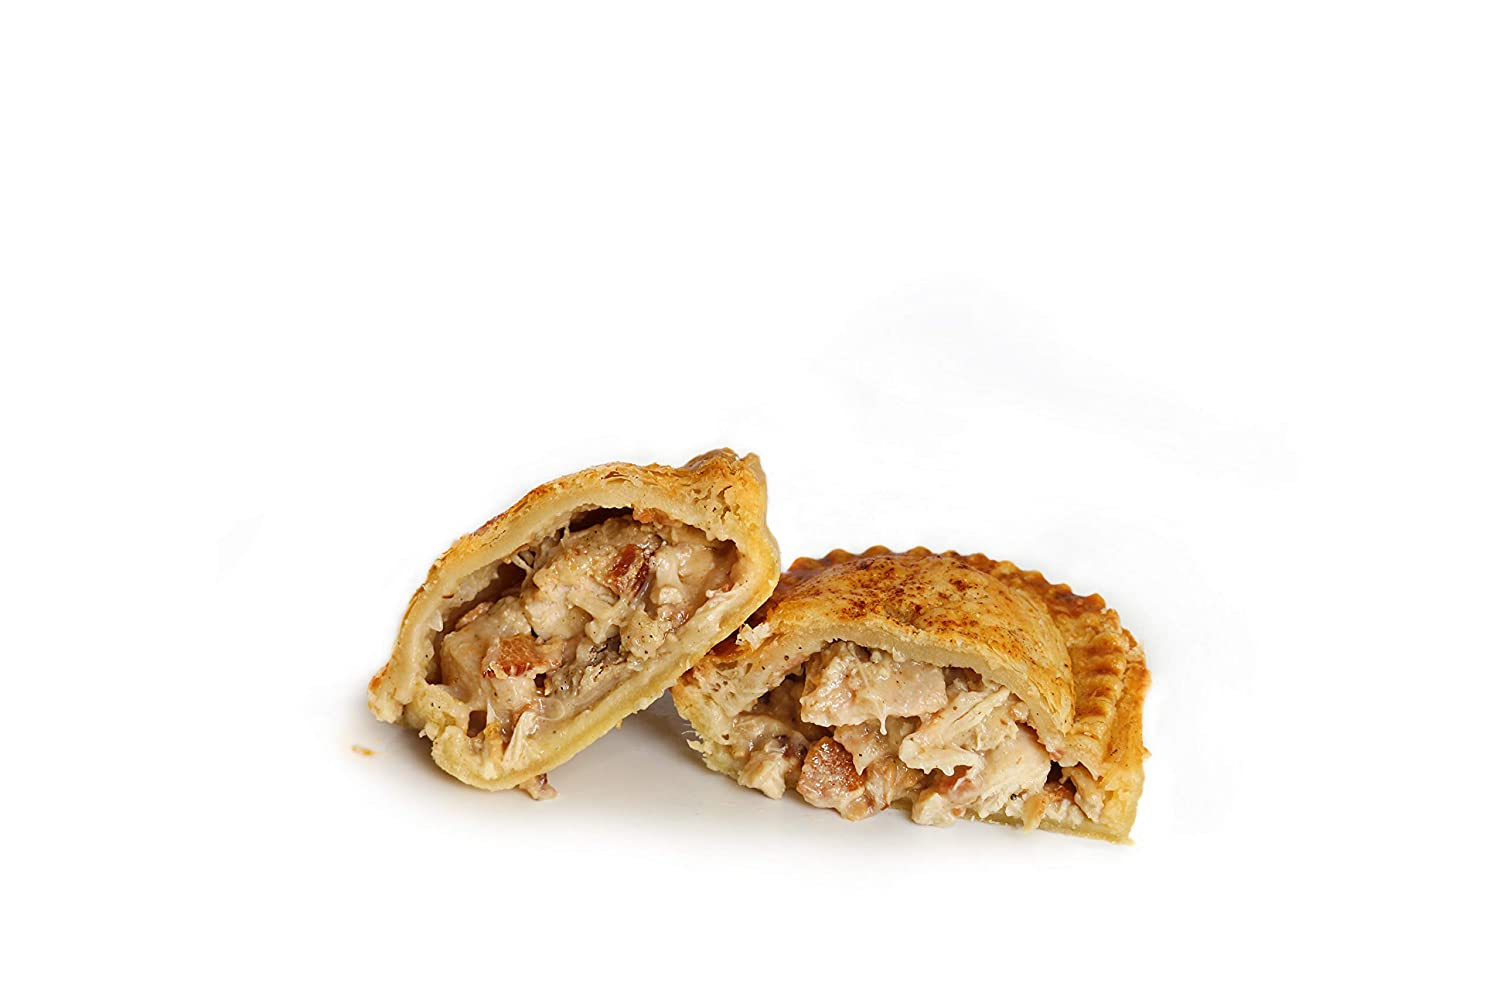 British, Australian, and South African Style Meat Pies; Ready-to-Bake Chicken and Bacon Hand Pies by Panbury's Pies